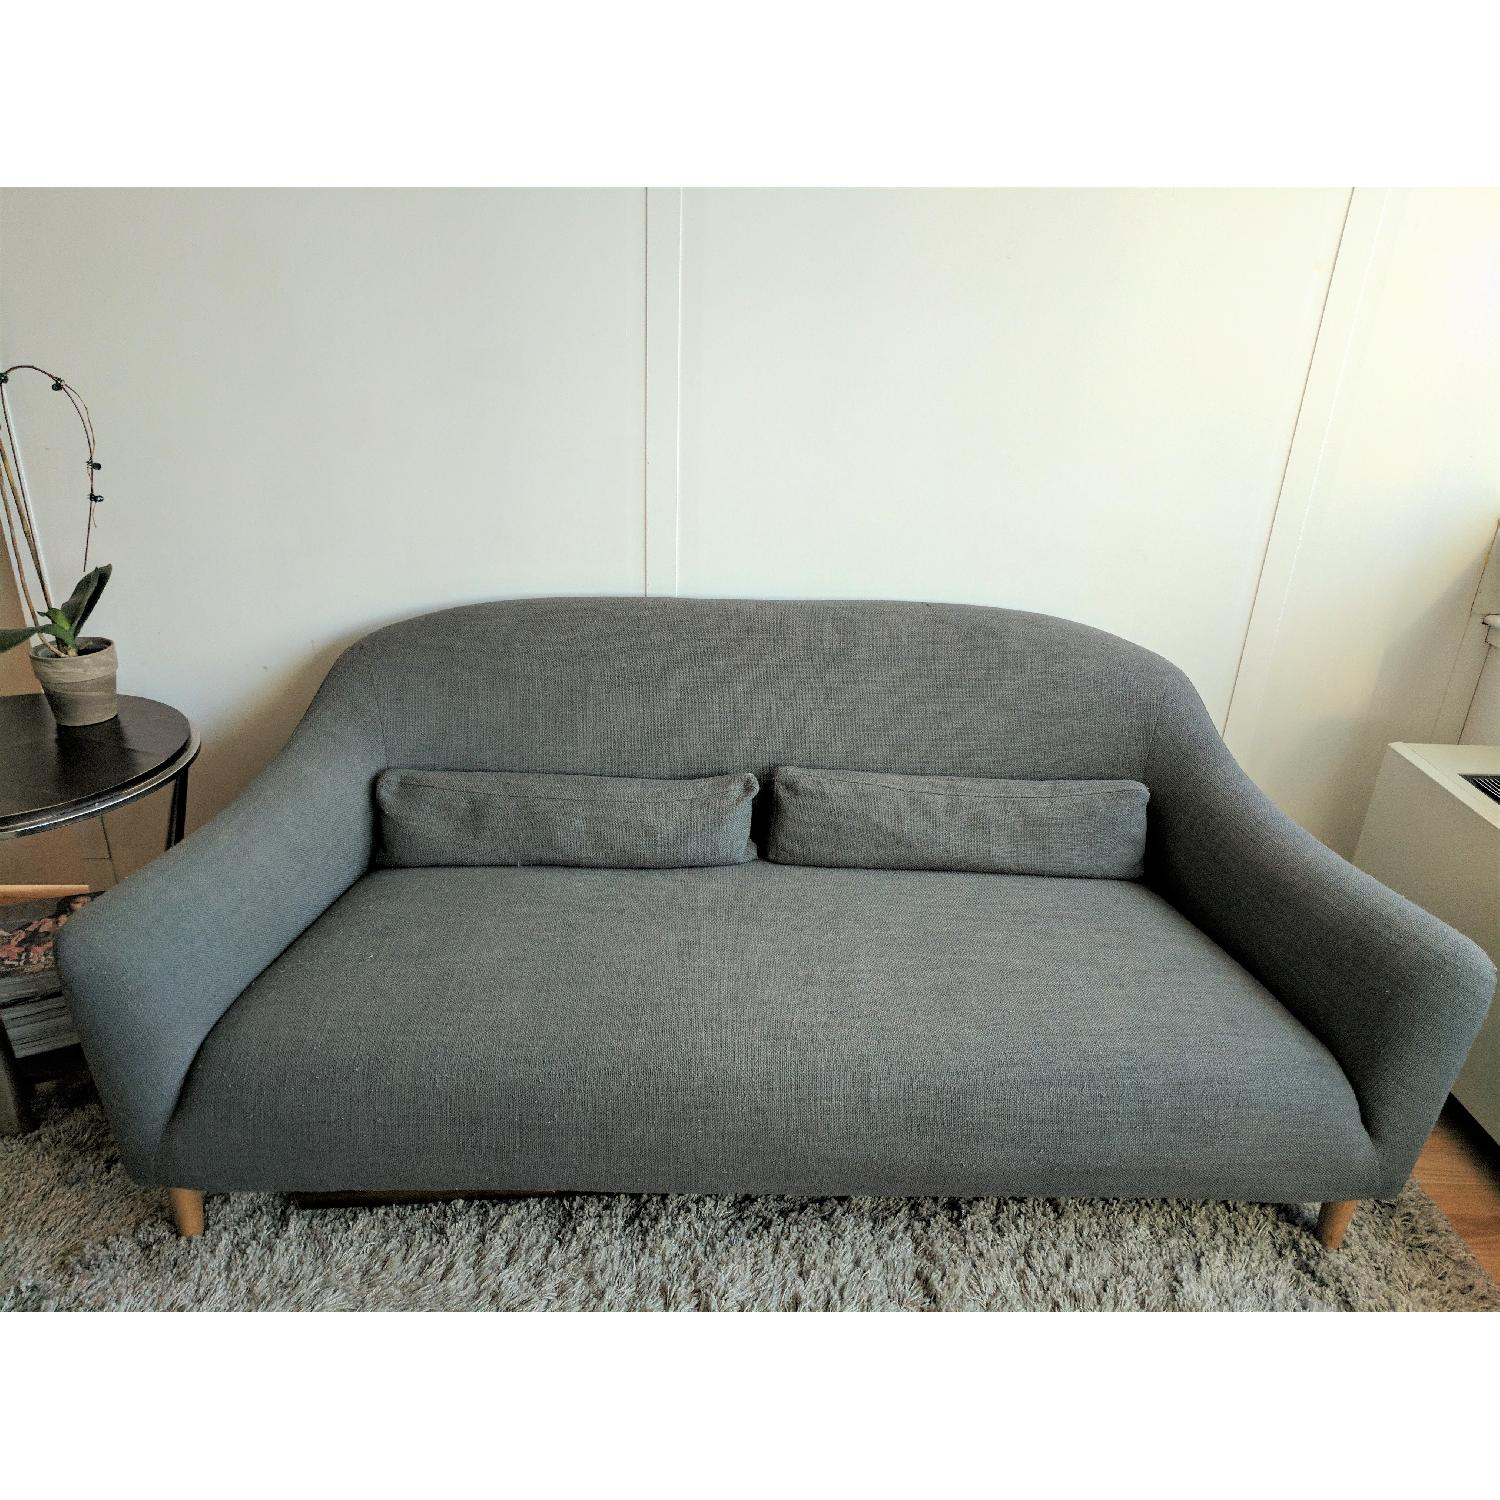 Crate & Barrel Pennie Sofa